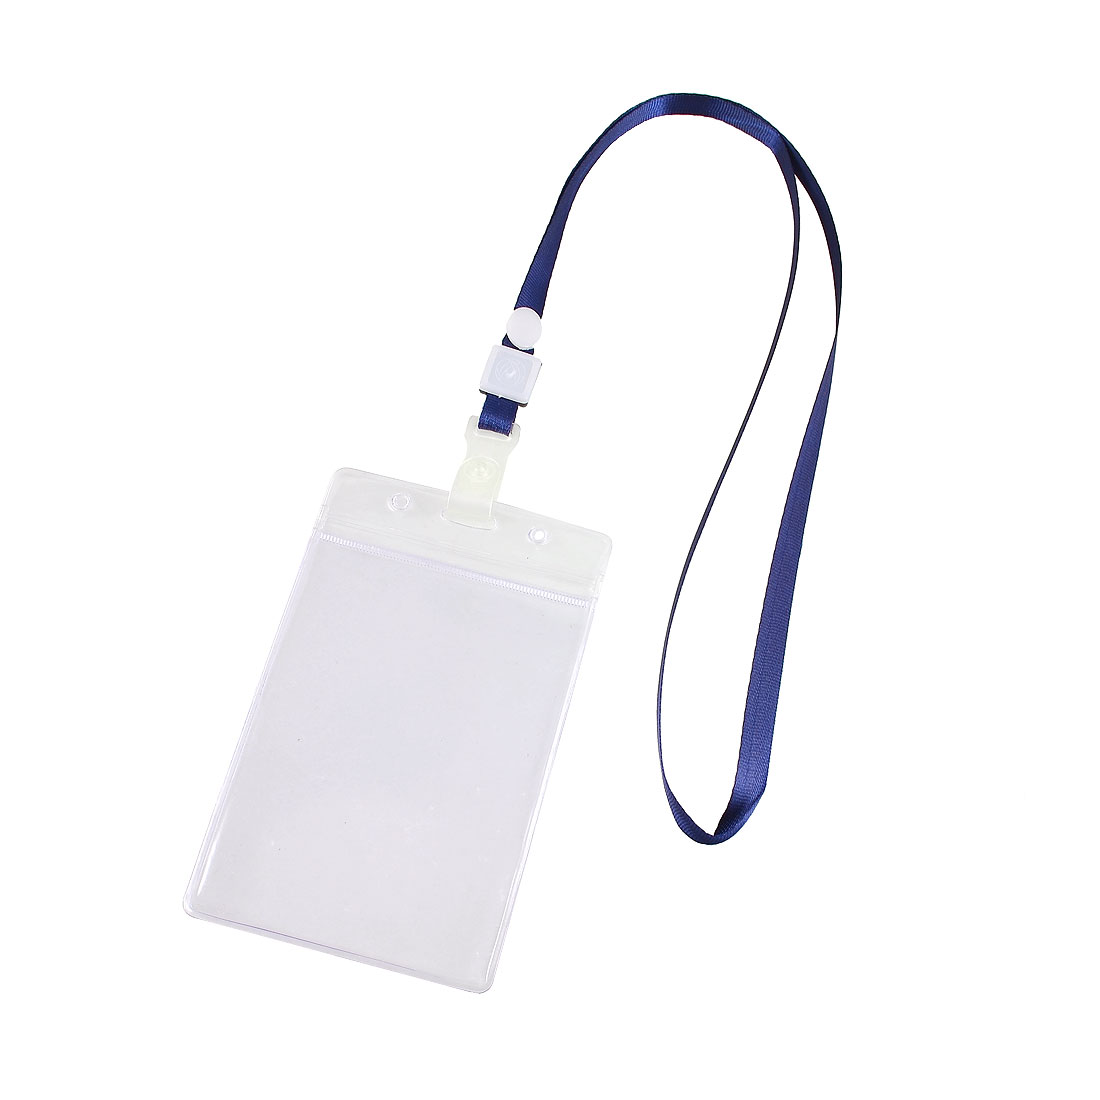 Navy Blue Clear ID Card Badge PVC Holder Adjustable Neck Strap Lanyard 2 Pcs